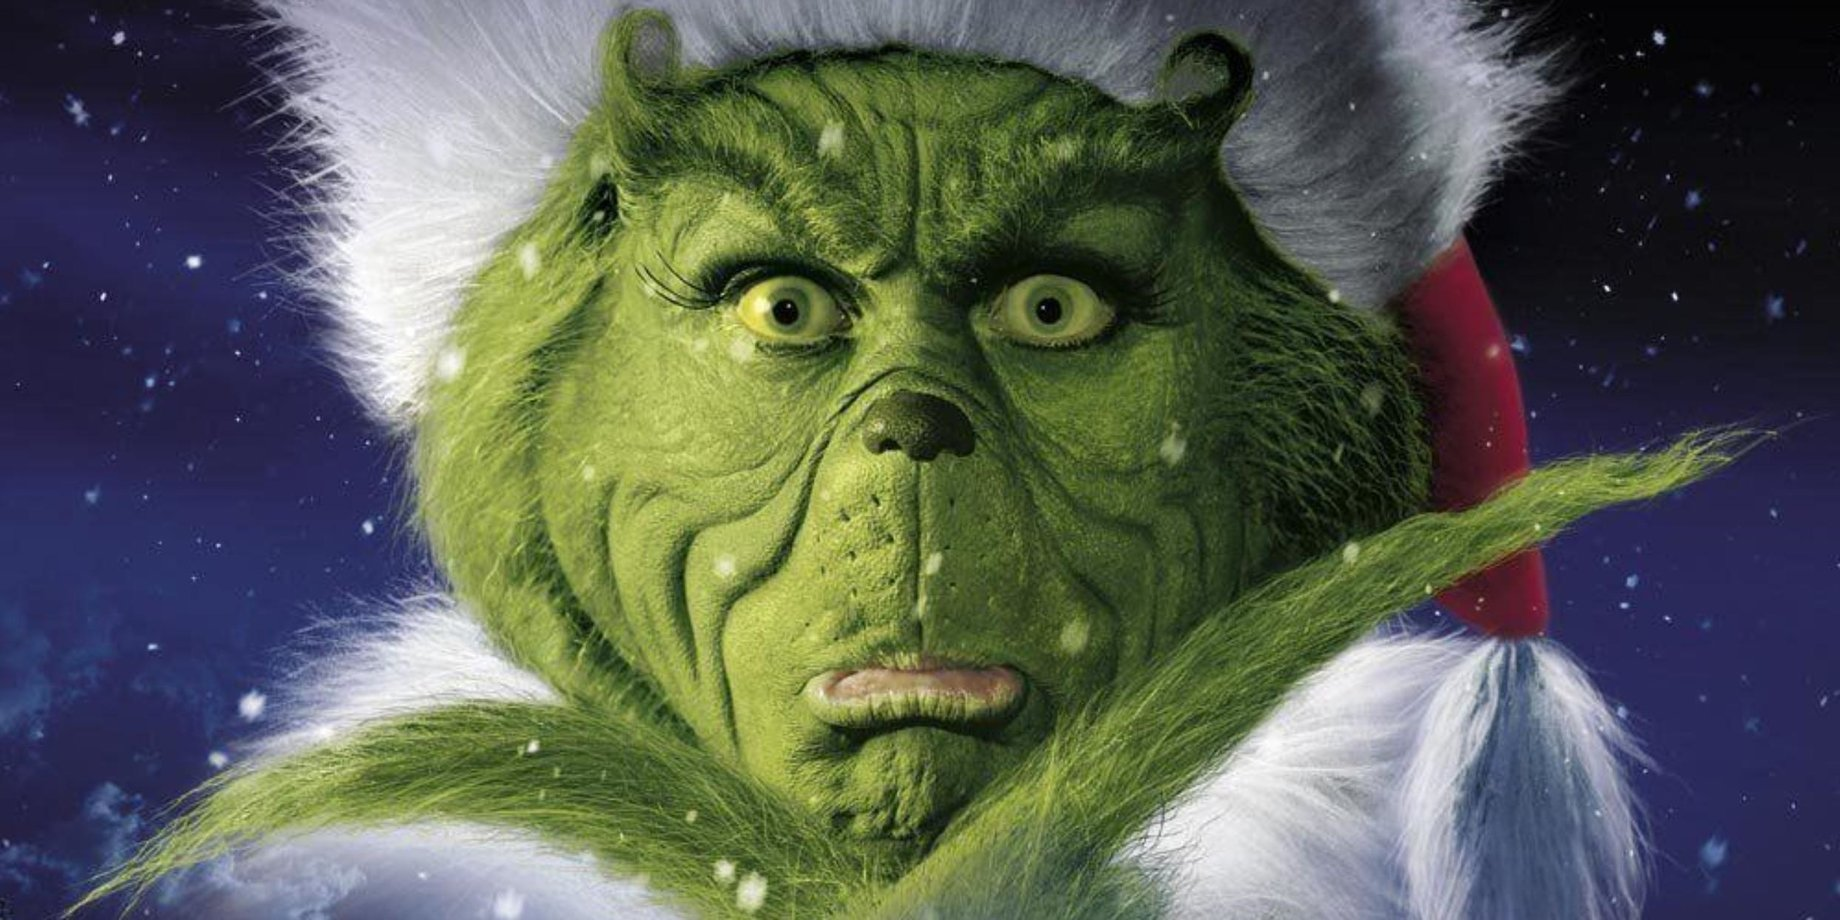 the character of the grinch in the movie how the grinch stole christmas How the grinch stole christmas character jackhammer is forced into another similar situation as the one in the first movie, but with all new characters.